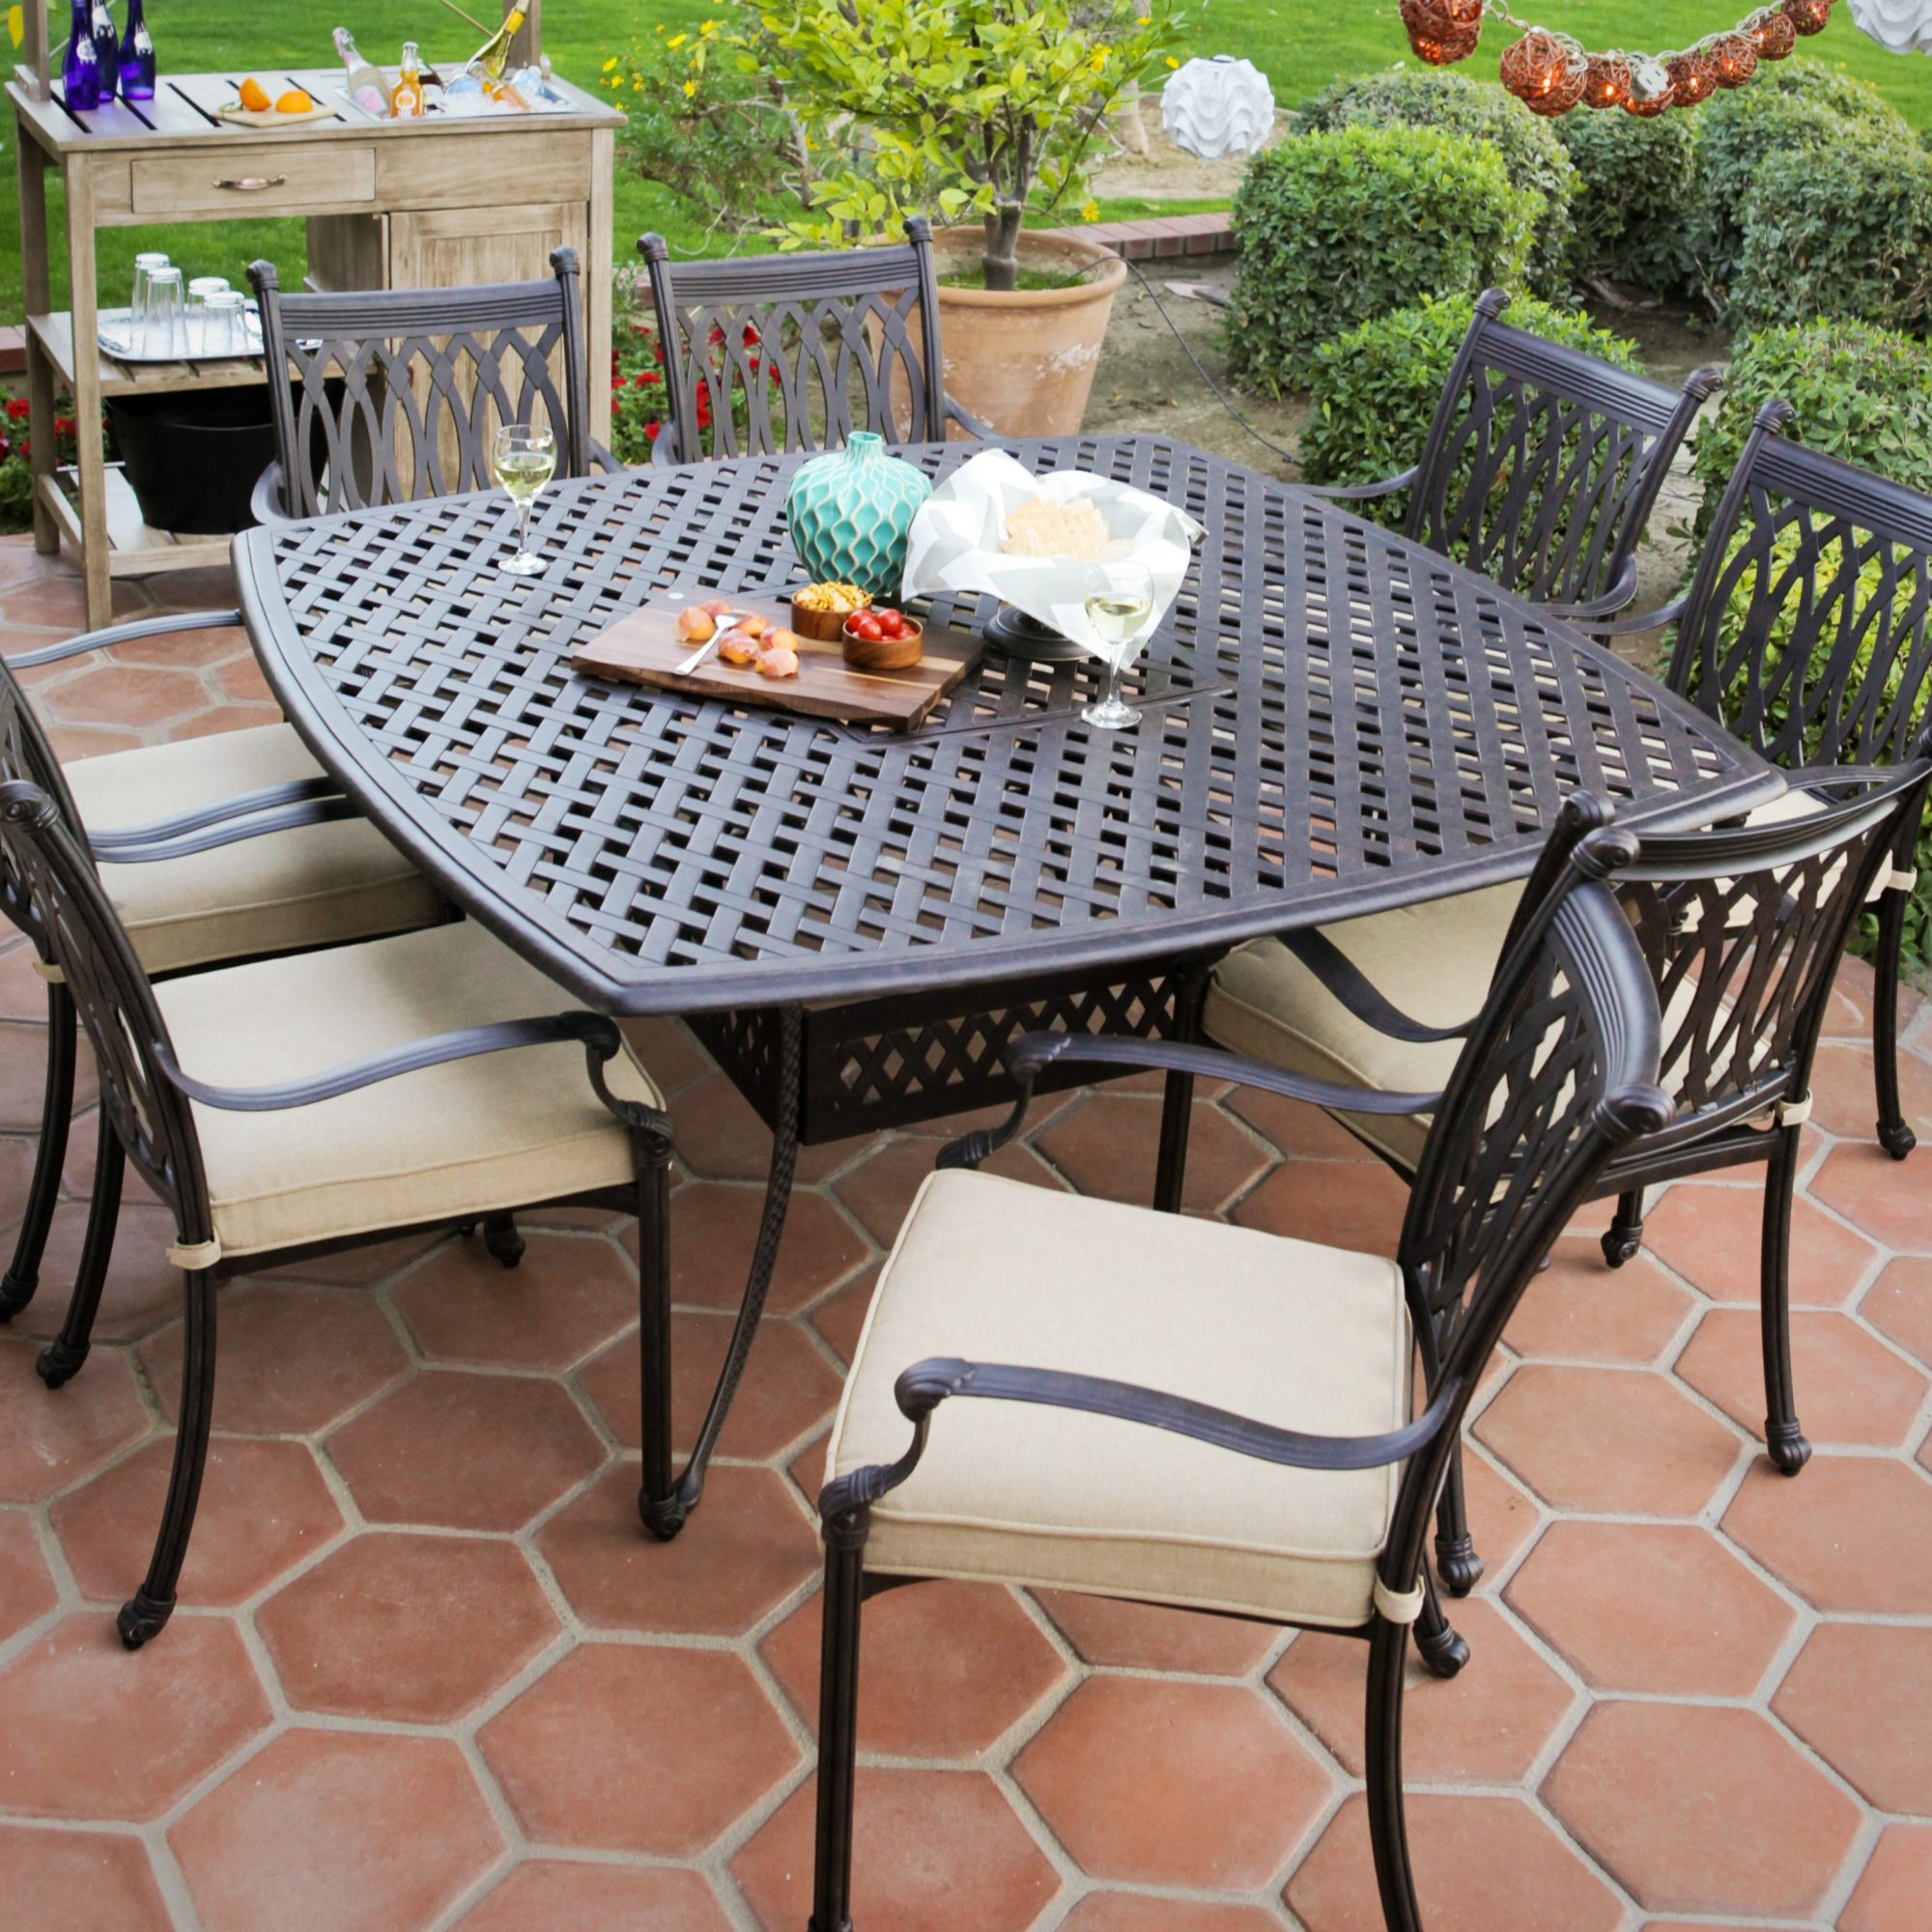 Patio dining sets for 8